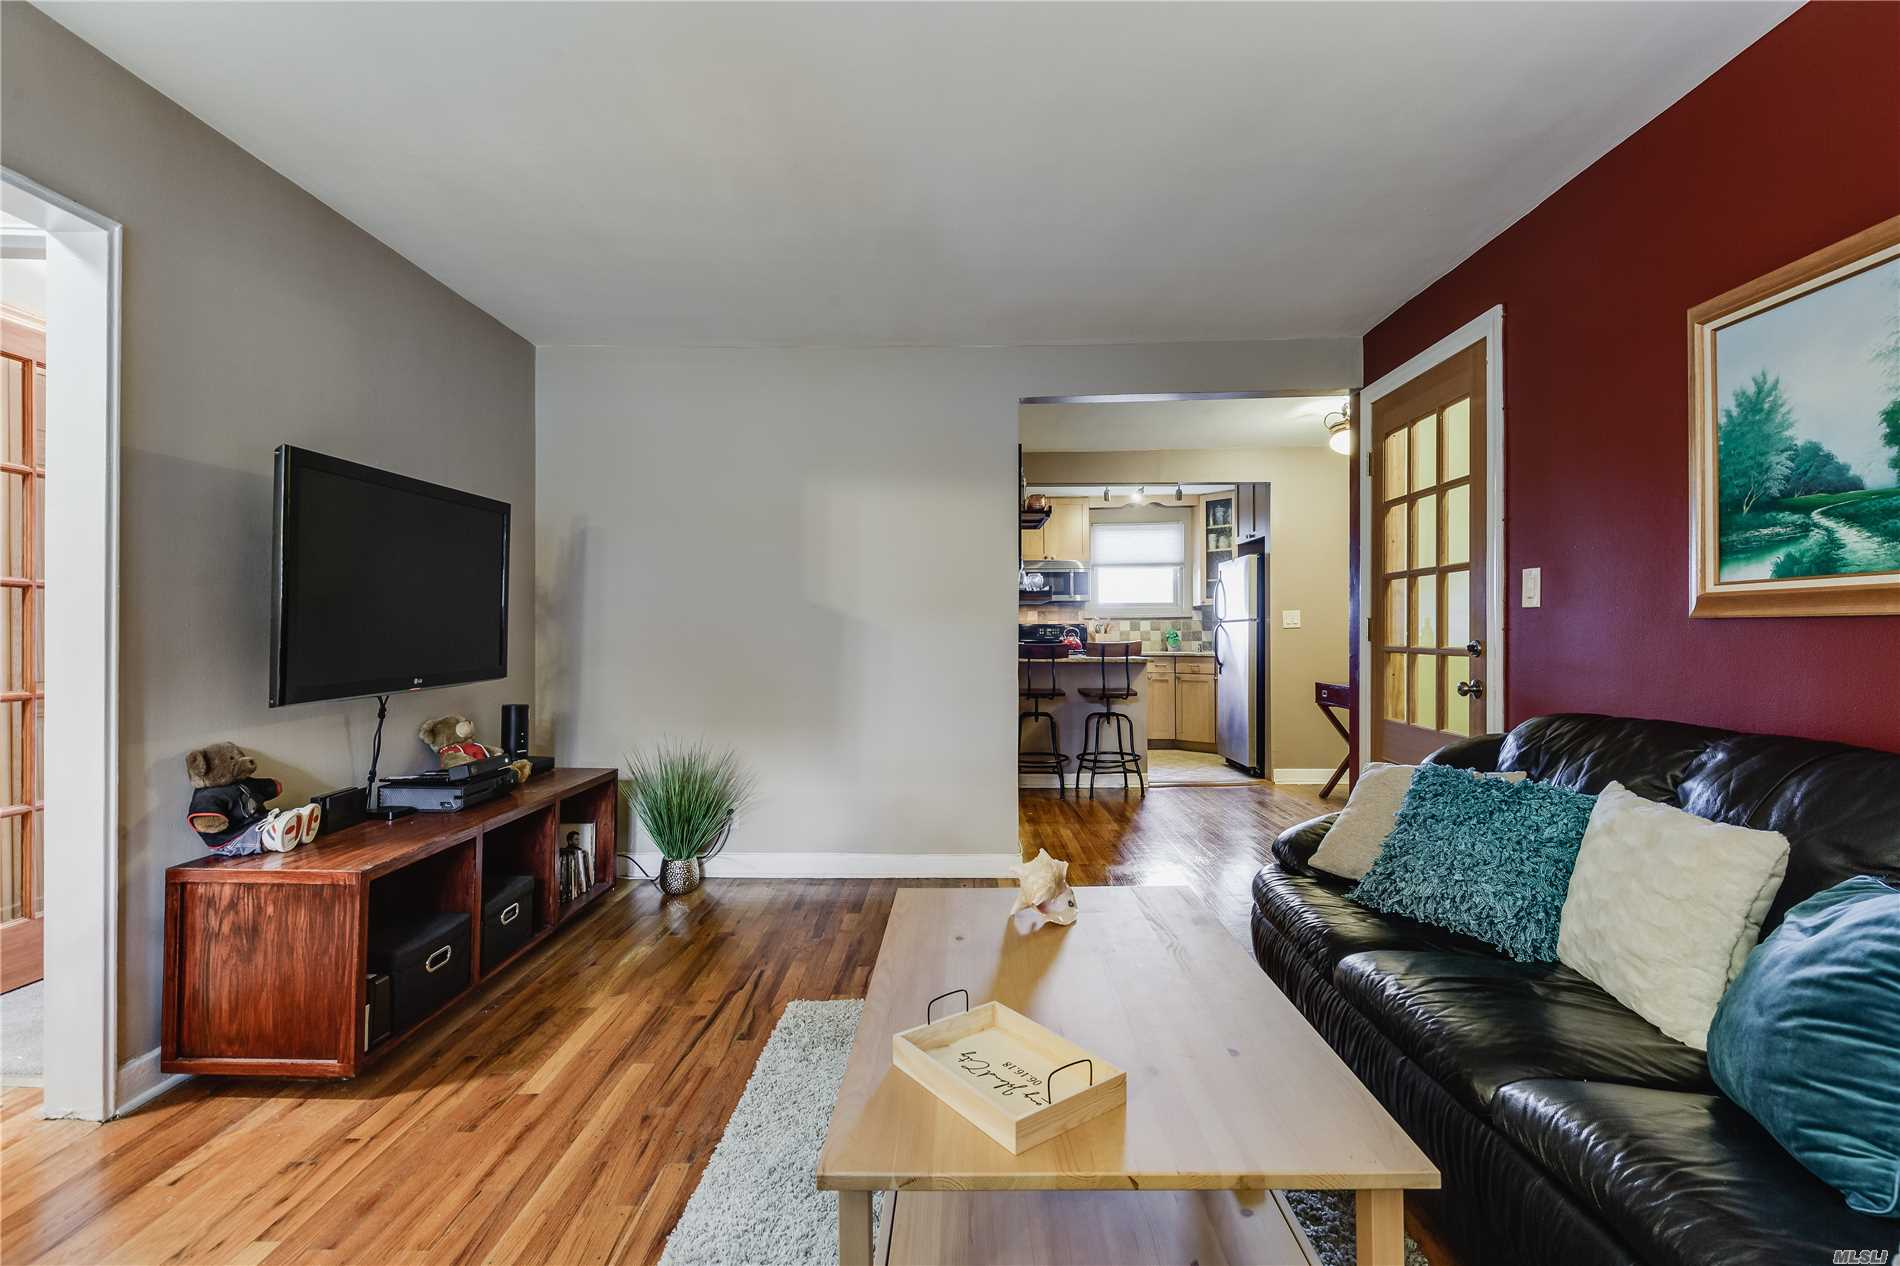 Tastefully Updated One Bedroom. Kitchen W/Granite Counter , Light Color Cabinetry, Offers Gym, Laundry Room W/ Reading Area , Room W Pool Table, + Ping Pong ,  Playground, Storage Room + Attic Space. Maintenance Include Heat, Water And Taxes. One Parking Space On Gated Area